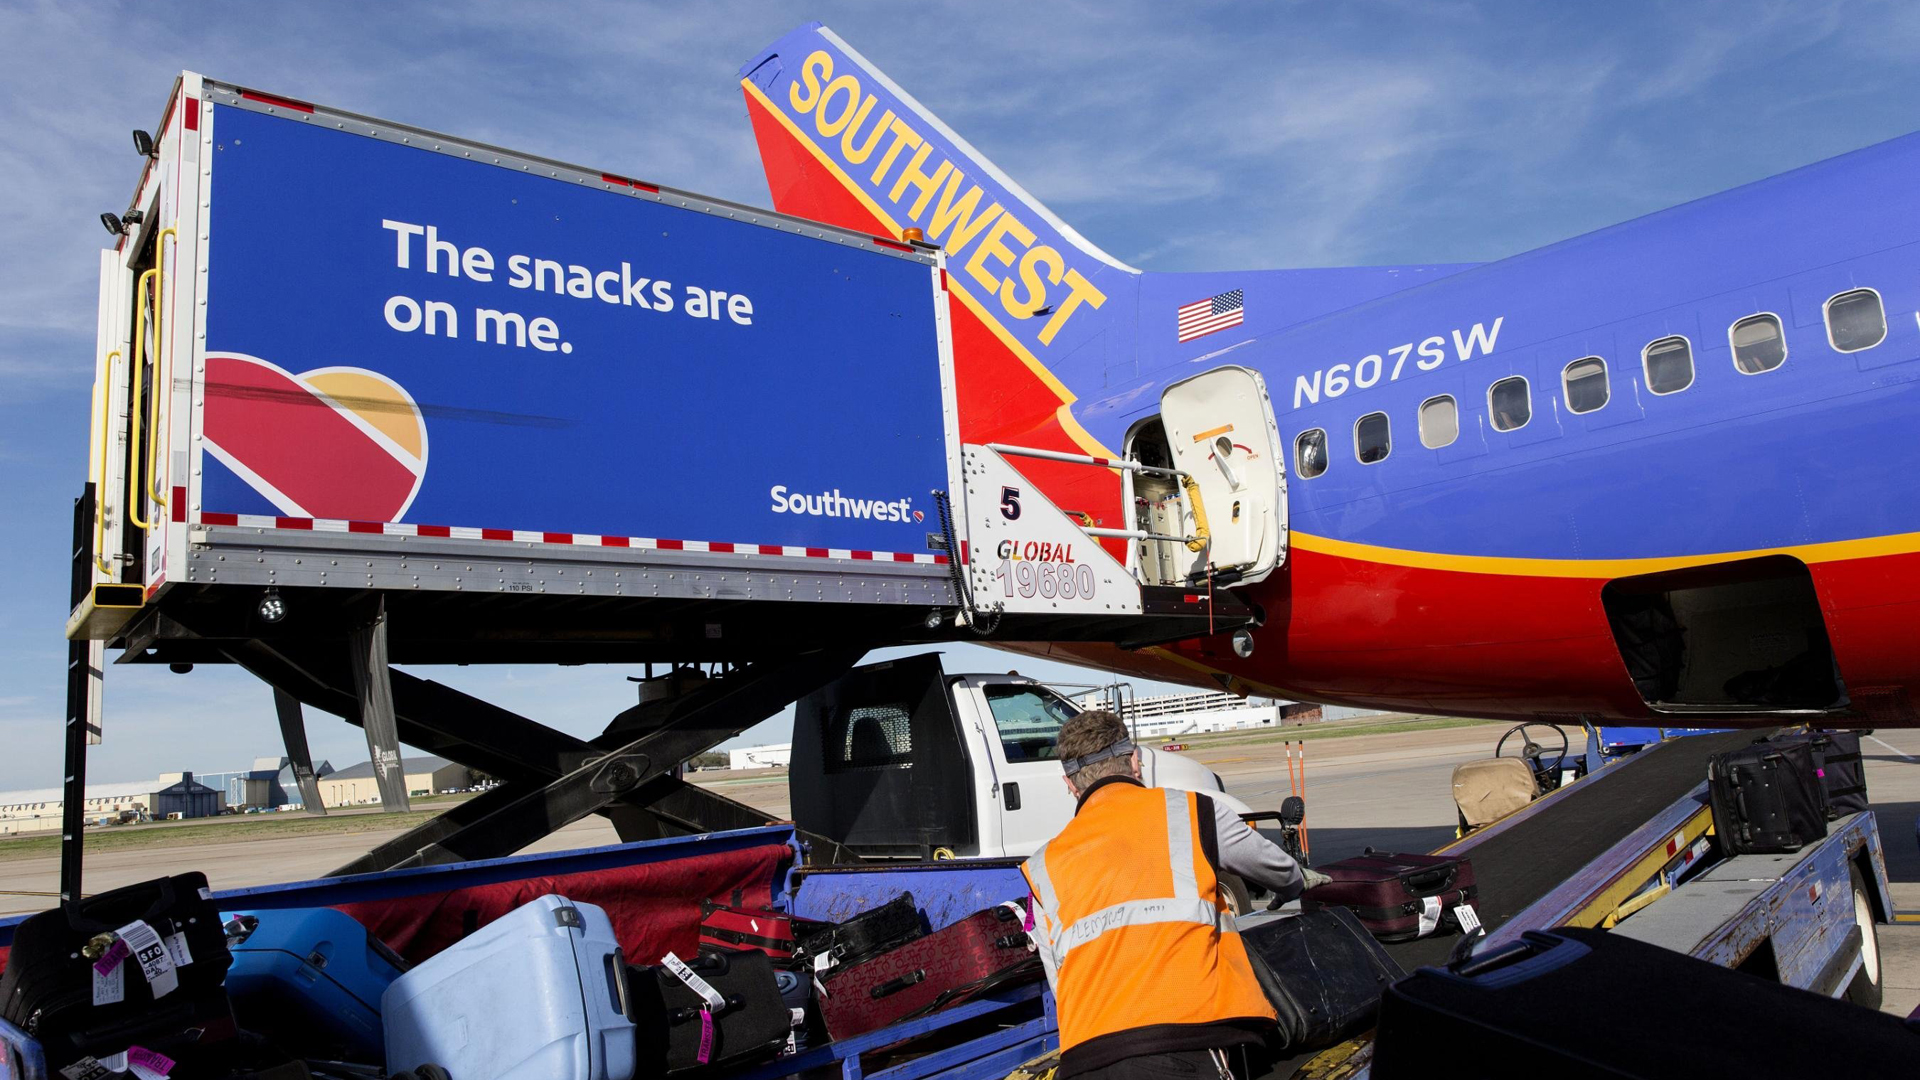 A Southwest plane is seen in a file photo. (Credit: Laura Buckman/Bloomberg/Getty)